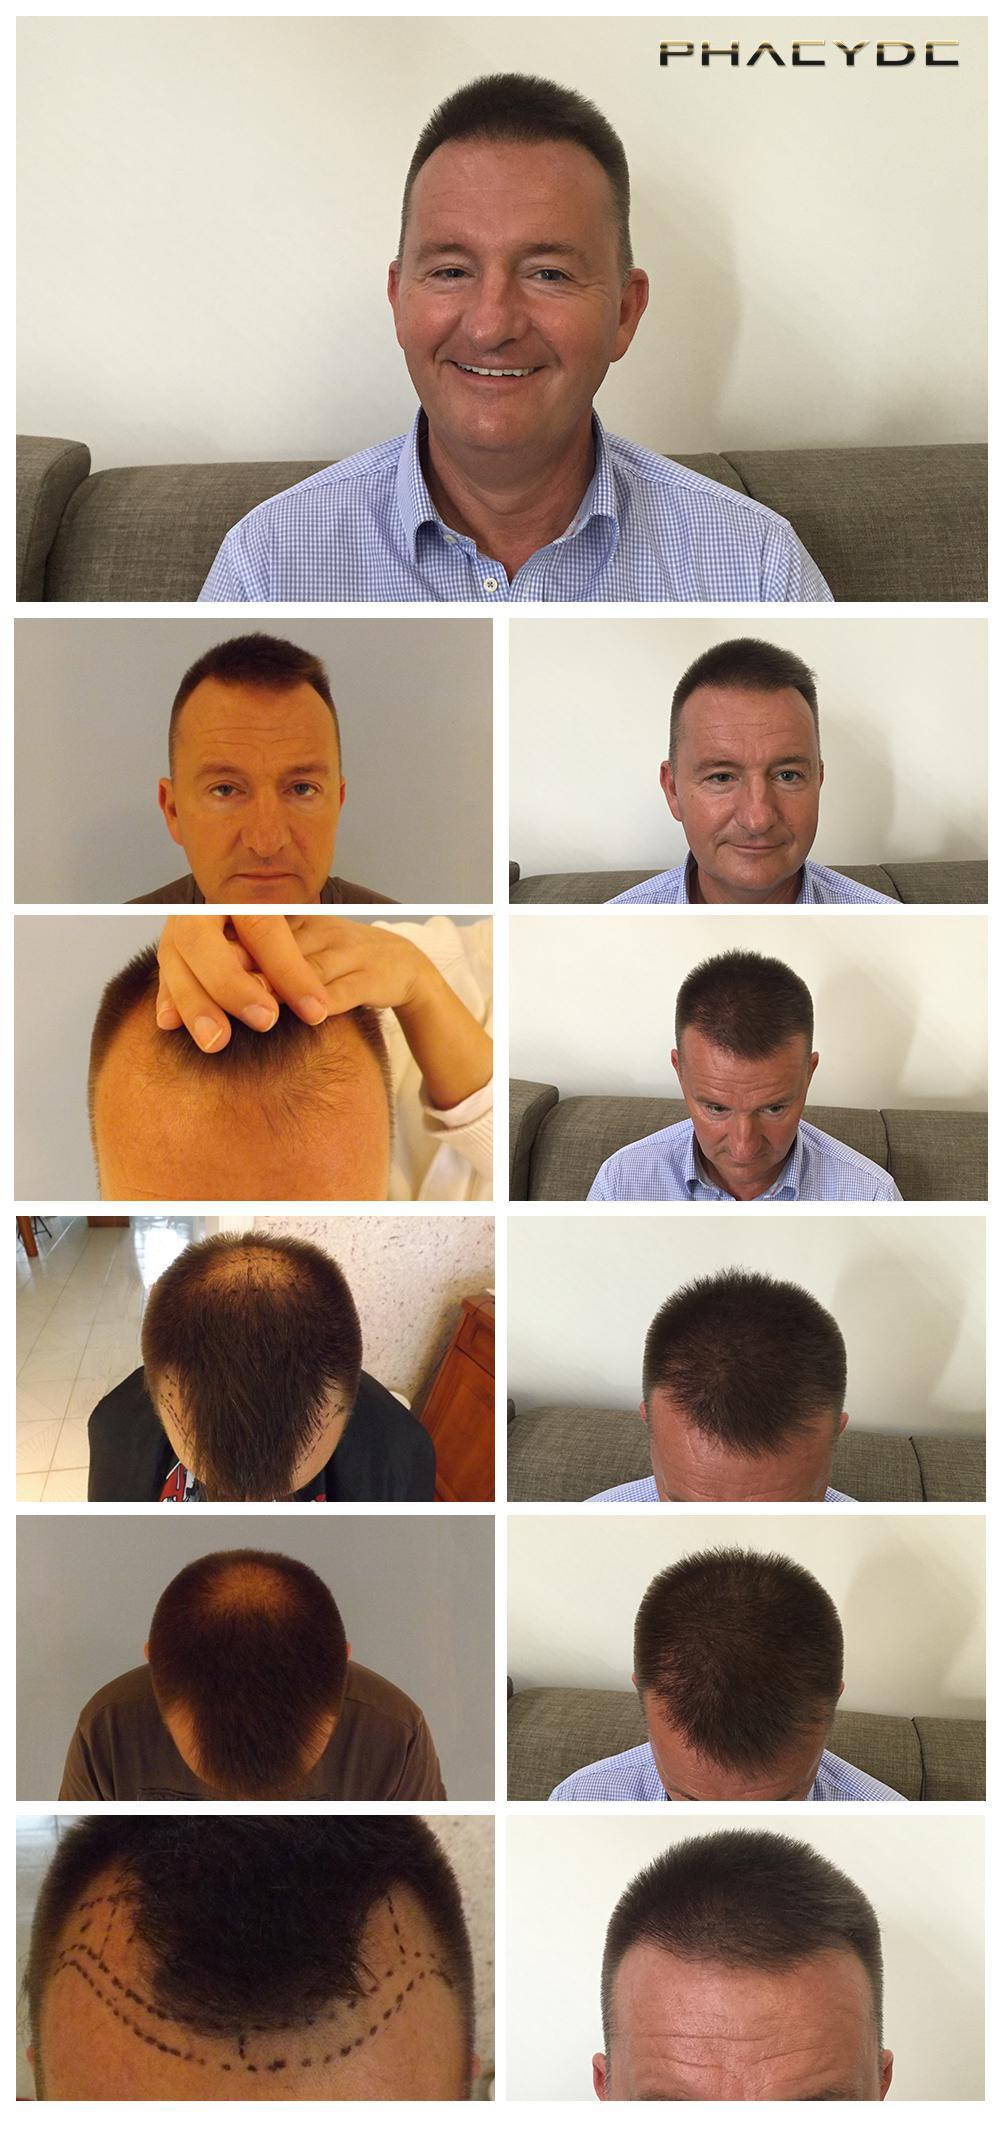 Hair transplant fue results before after photos zsolt m - PHAEYDE Clinic